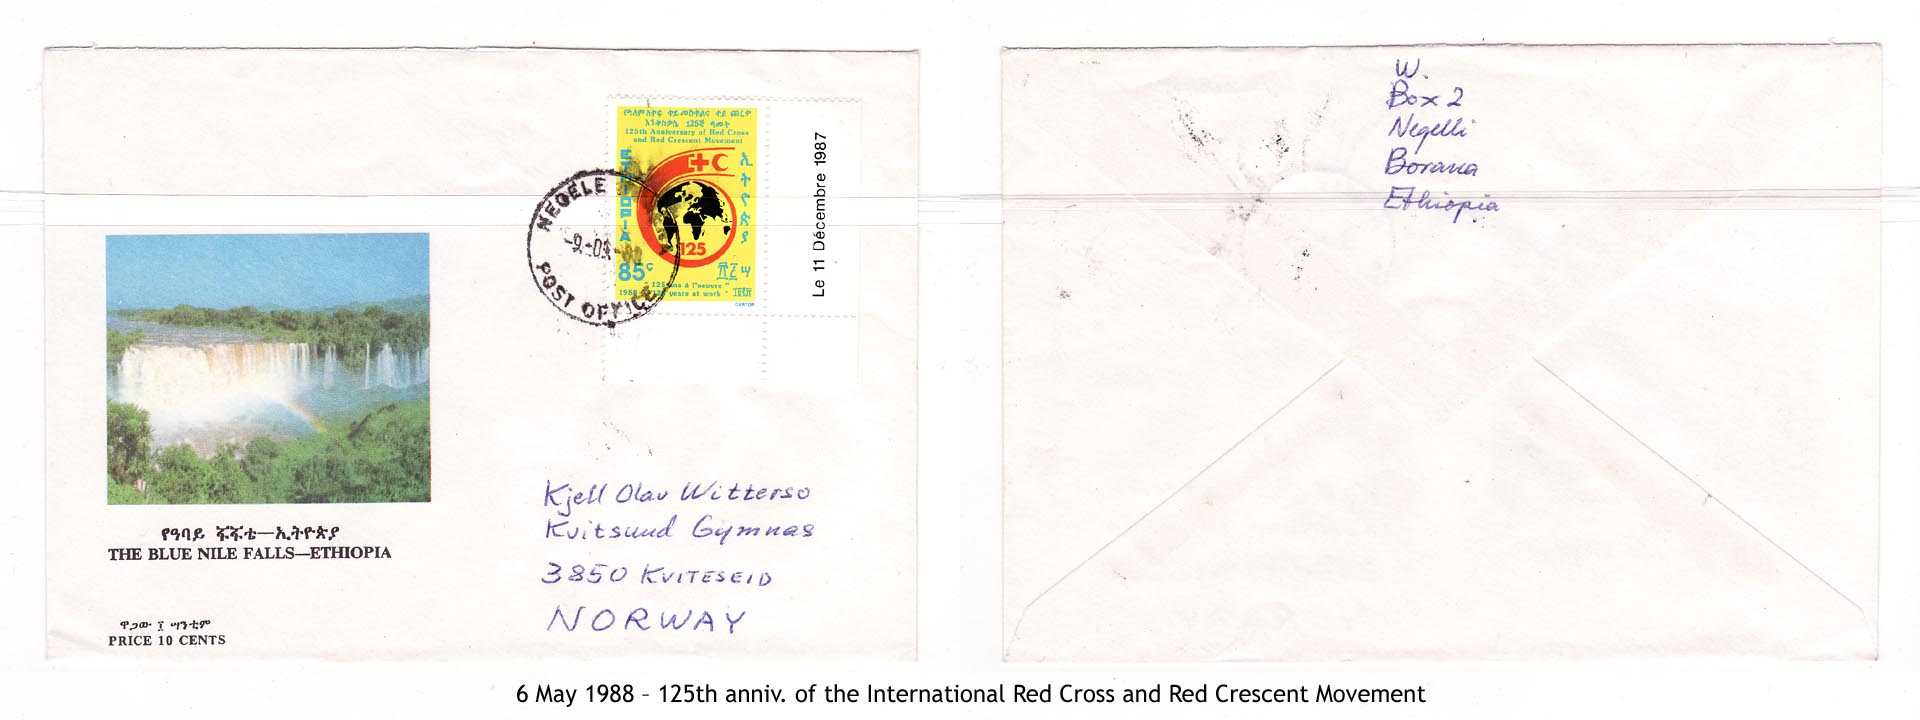 19880506 – 125th anniv. of the International Red Cross and Red Crescent Movement